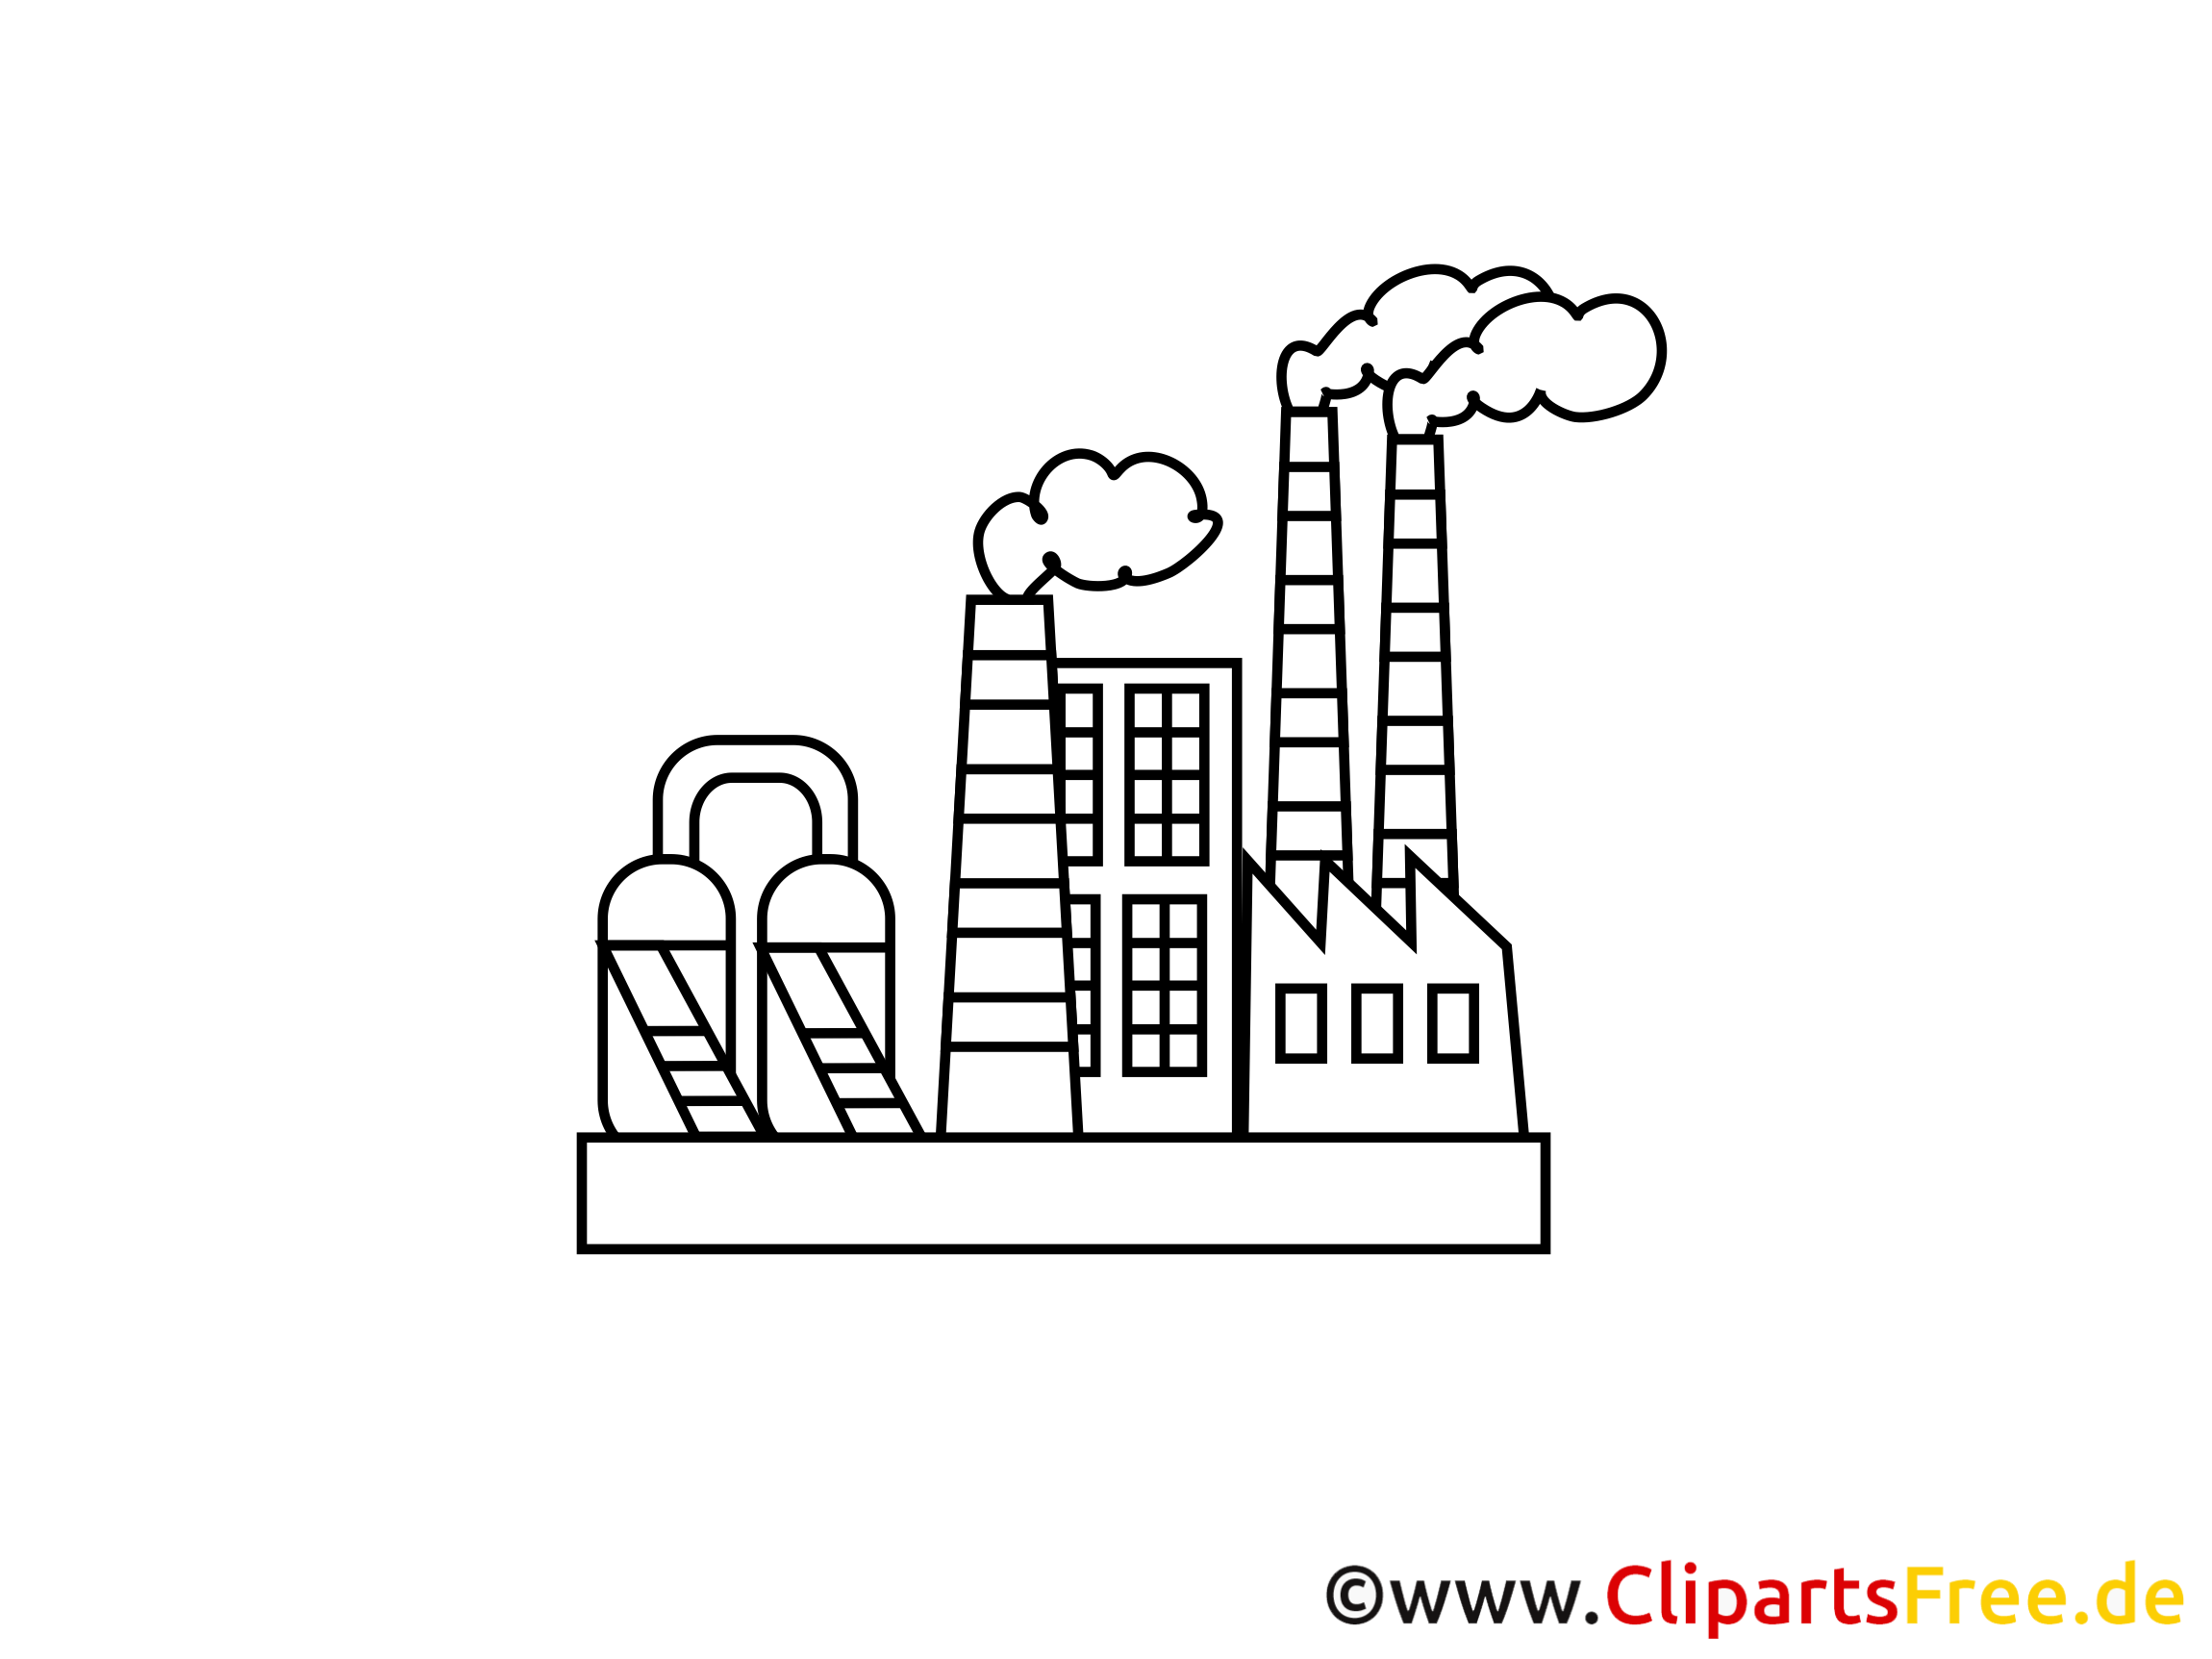 clipart usine gratuit - photo #3